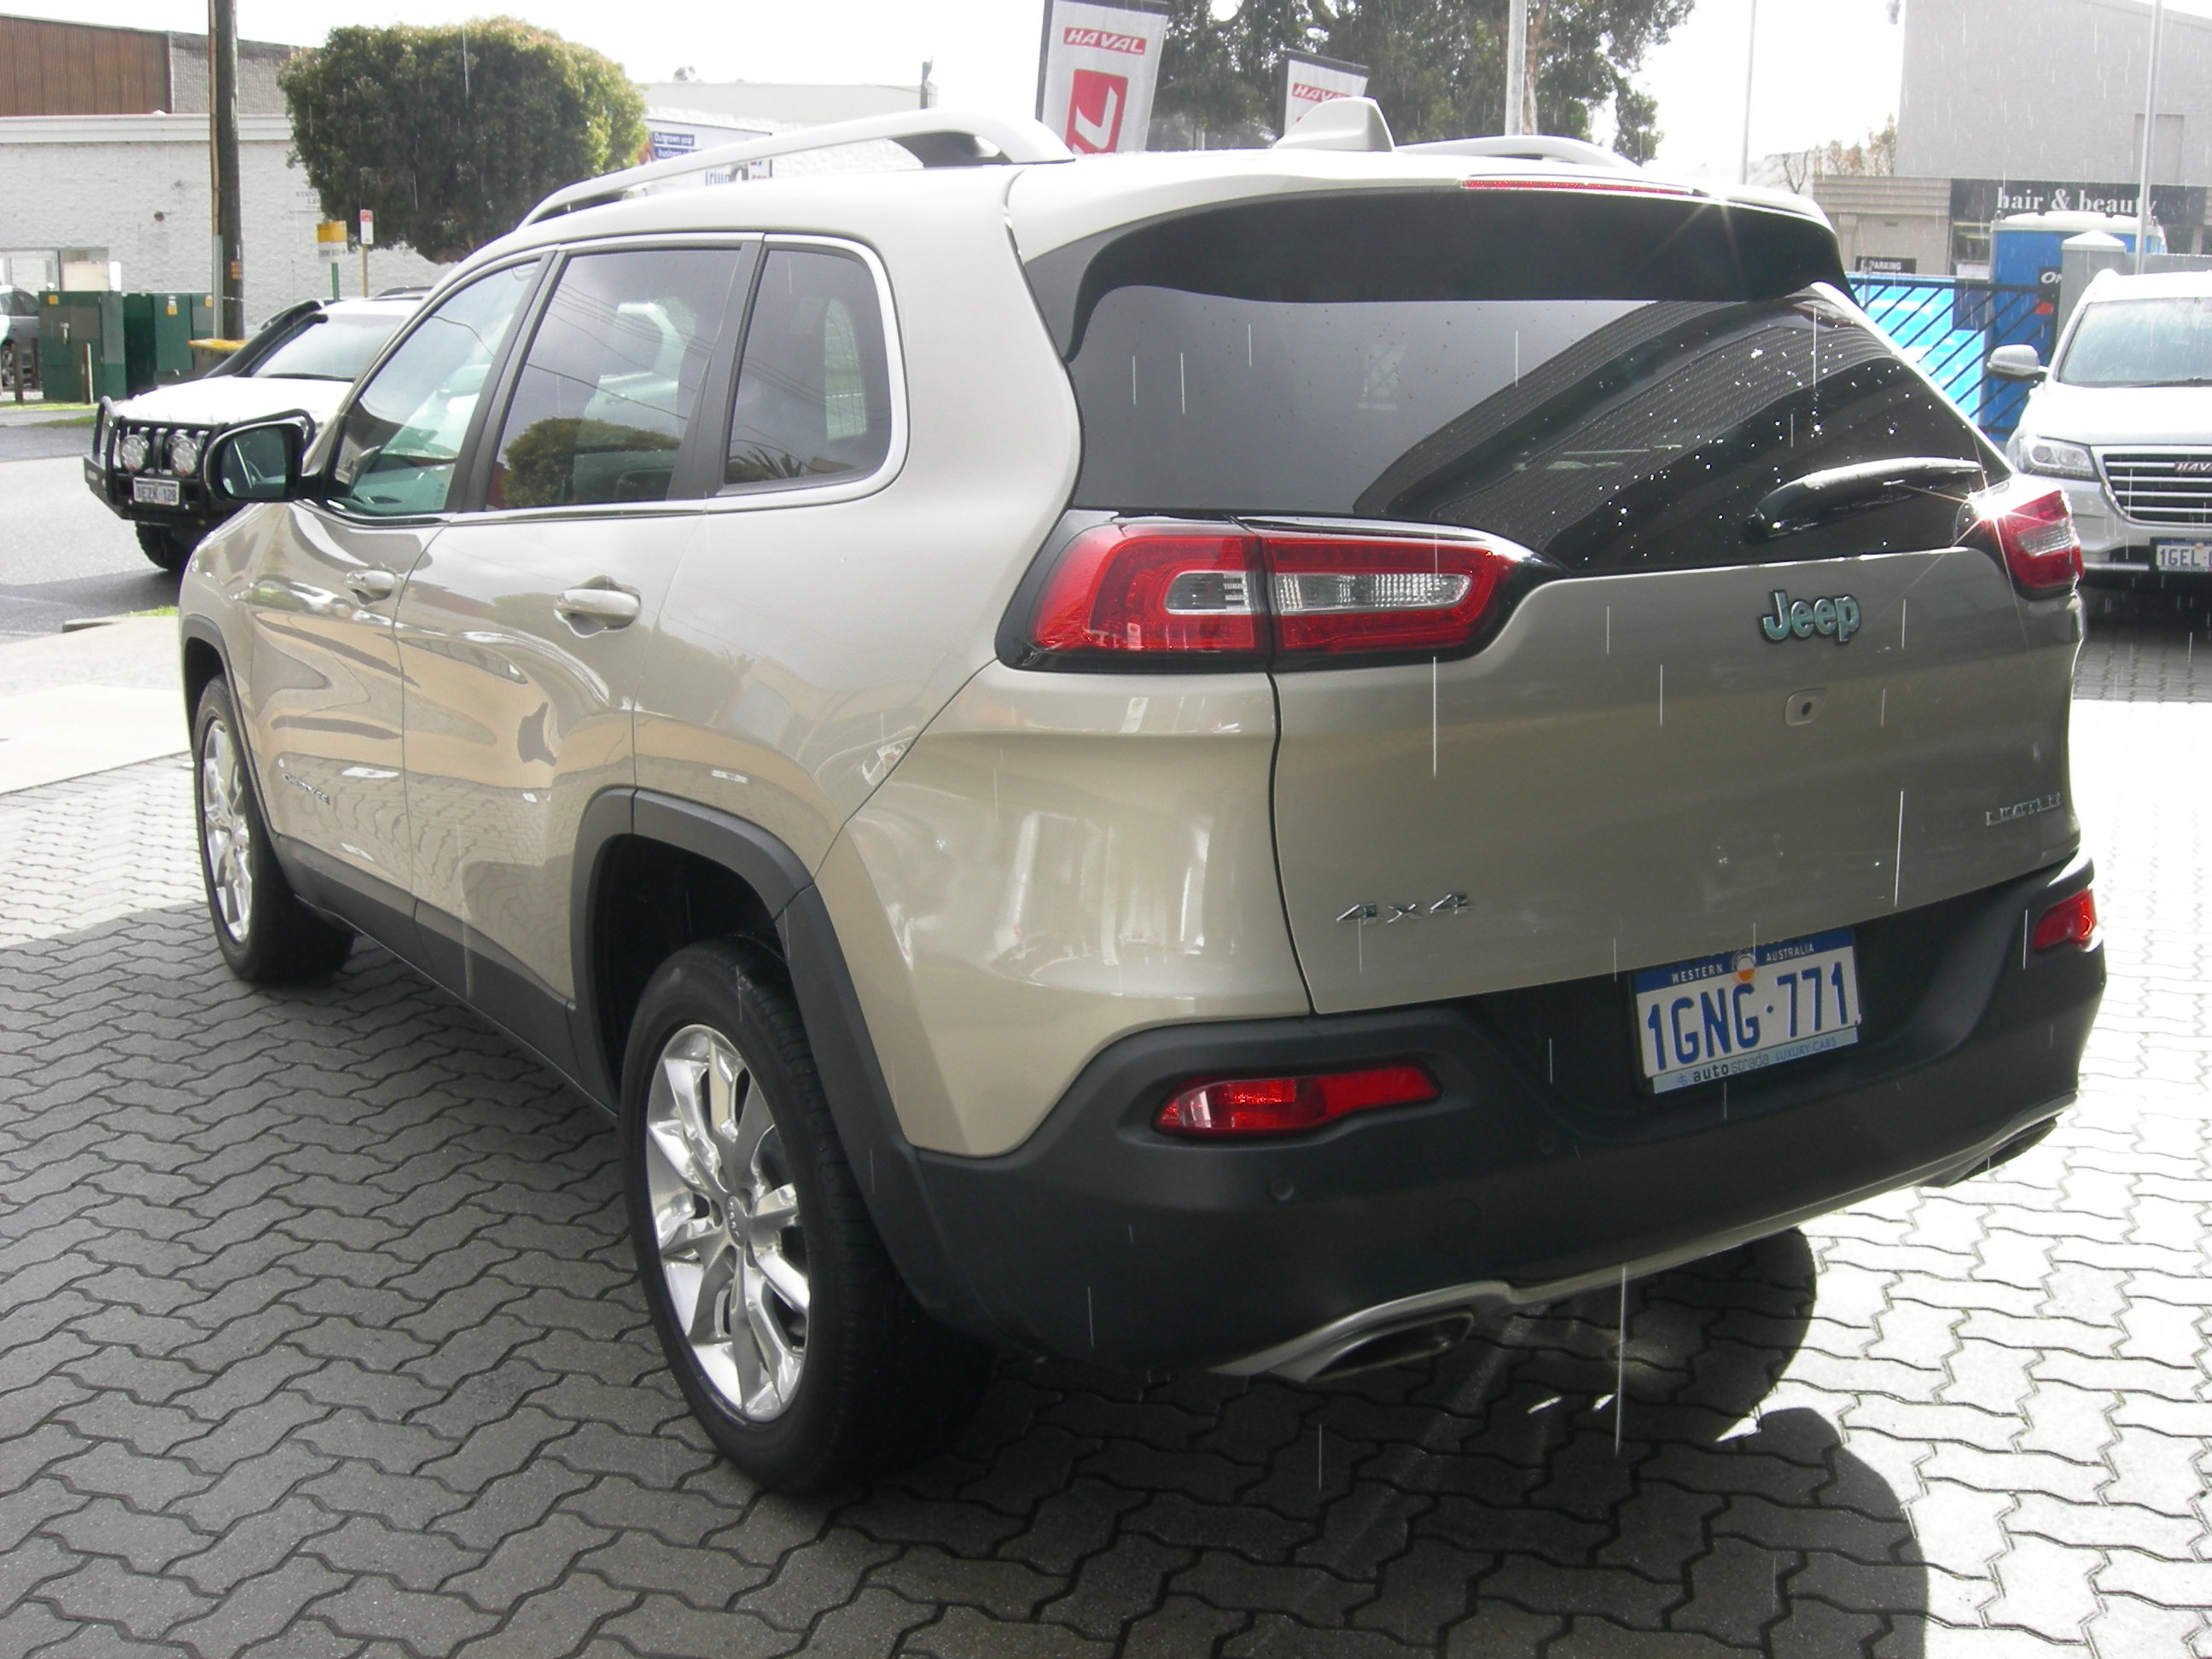 Jeep Cherokee for sale in Perth